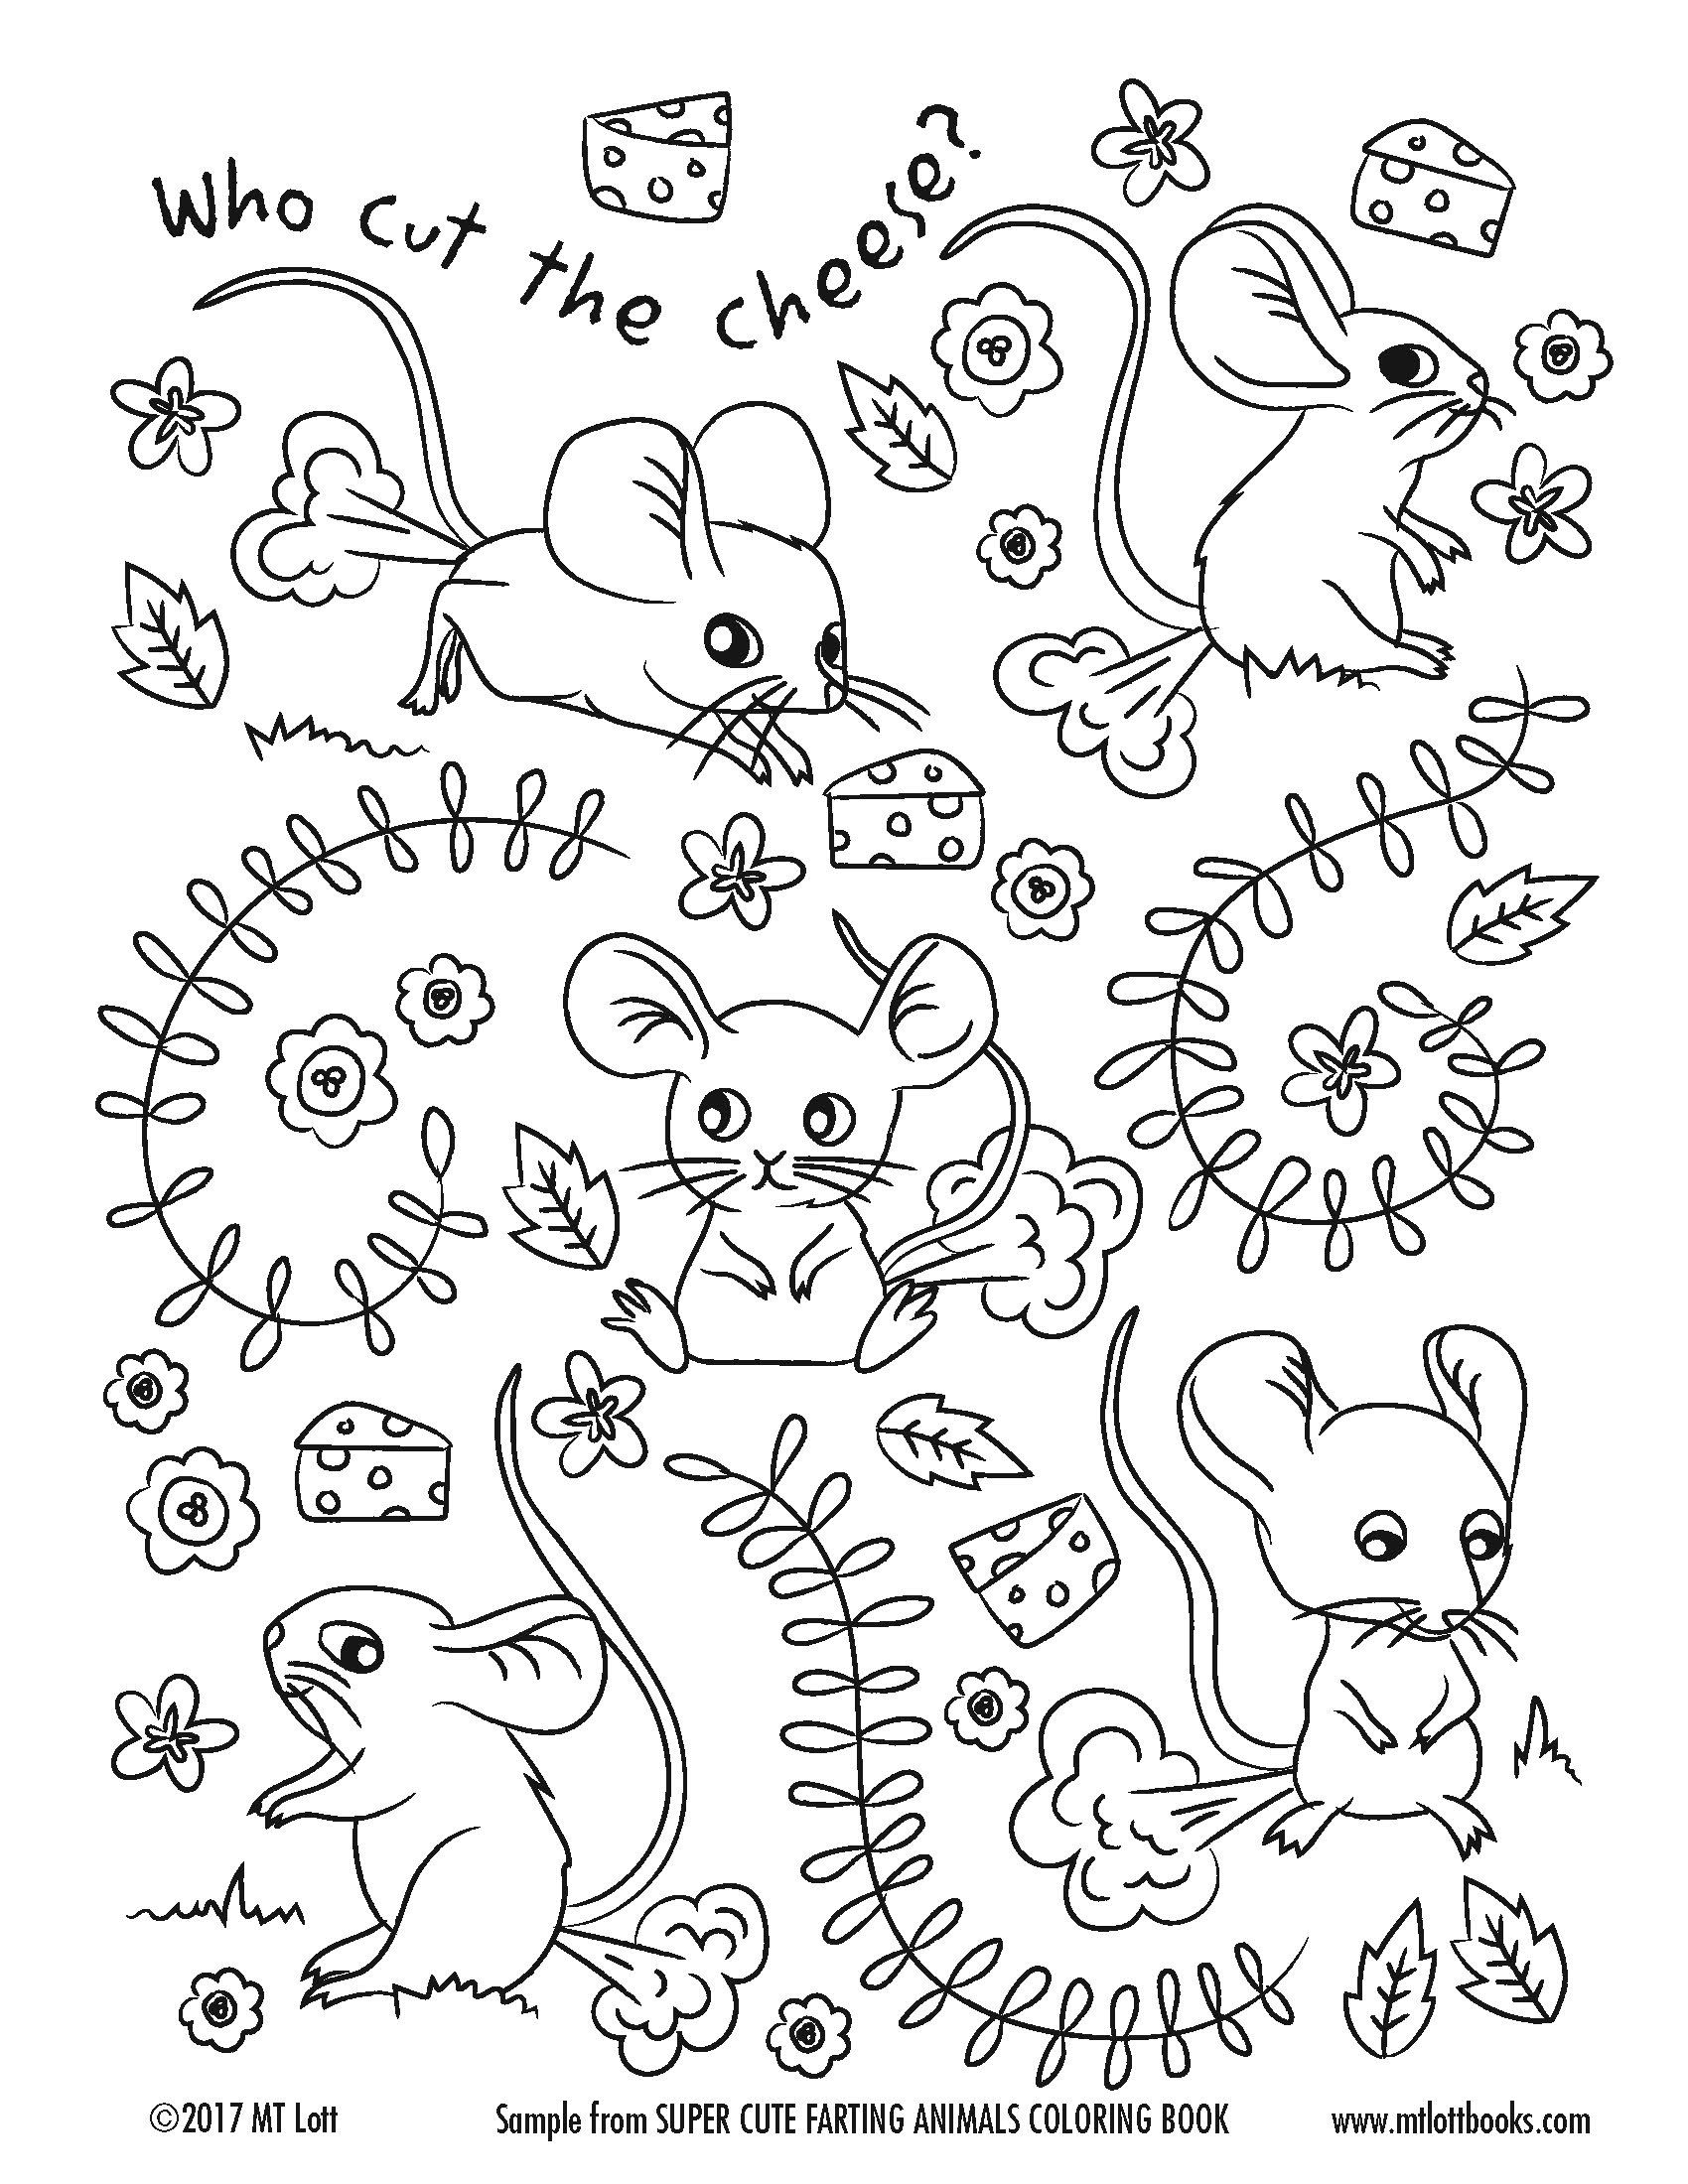 Free Coloring Page From M T Lott S Super Cute Farting Animals Coloring Book Animal Coloring Books Coloring Books Free Coloring Pages